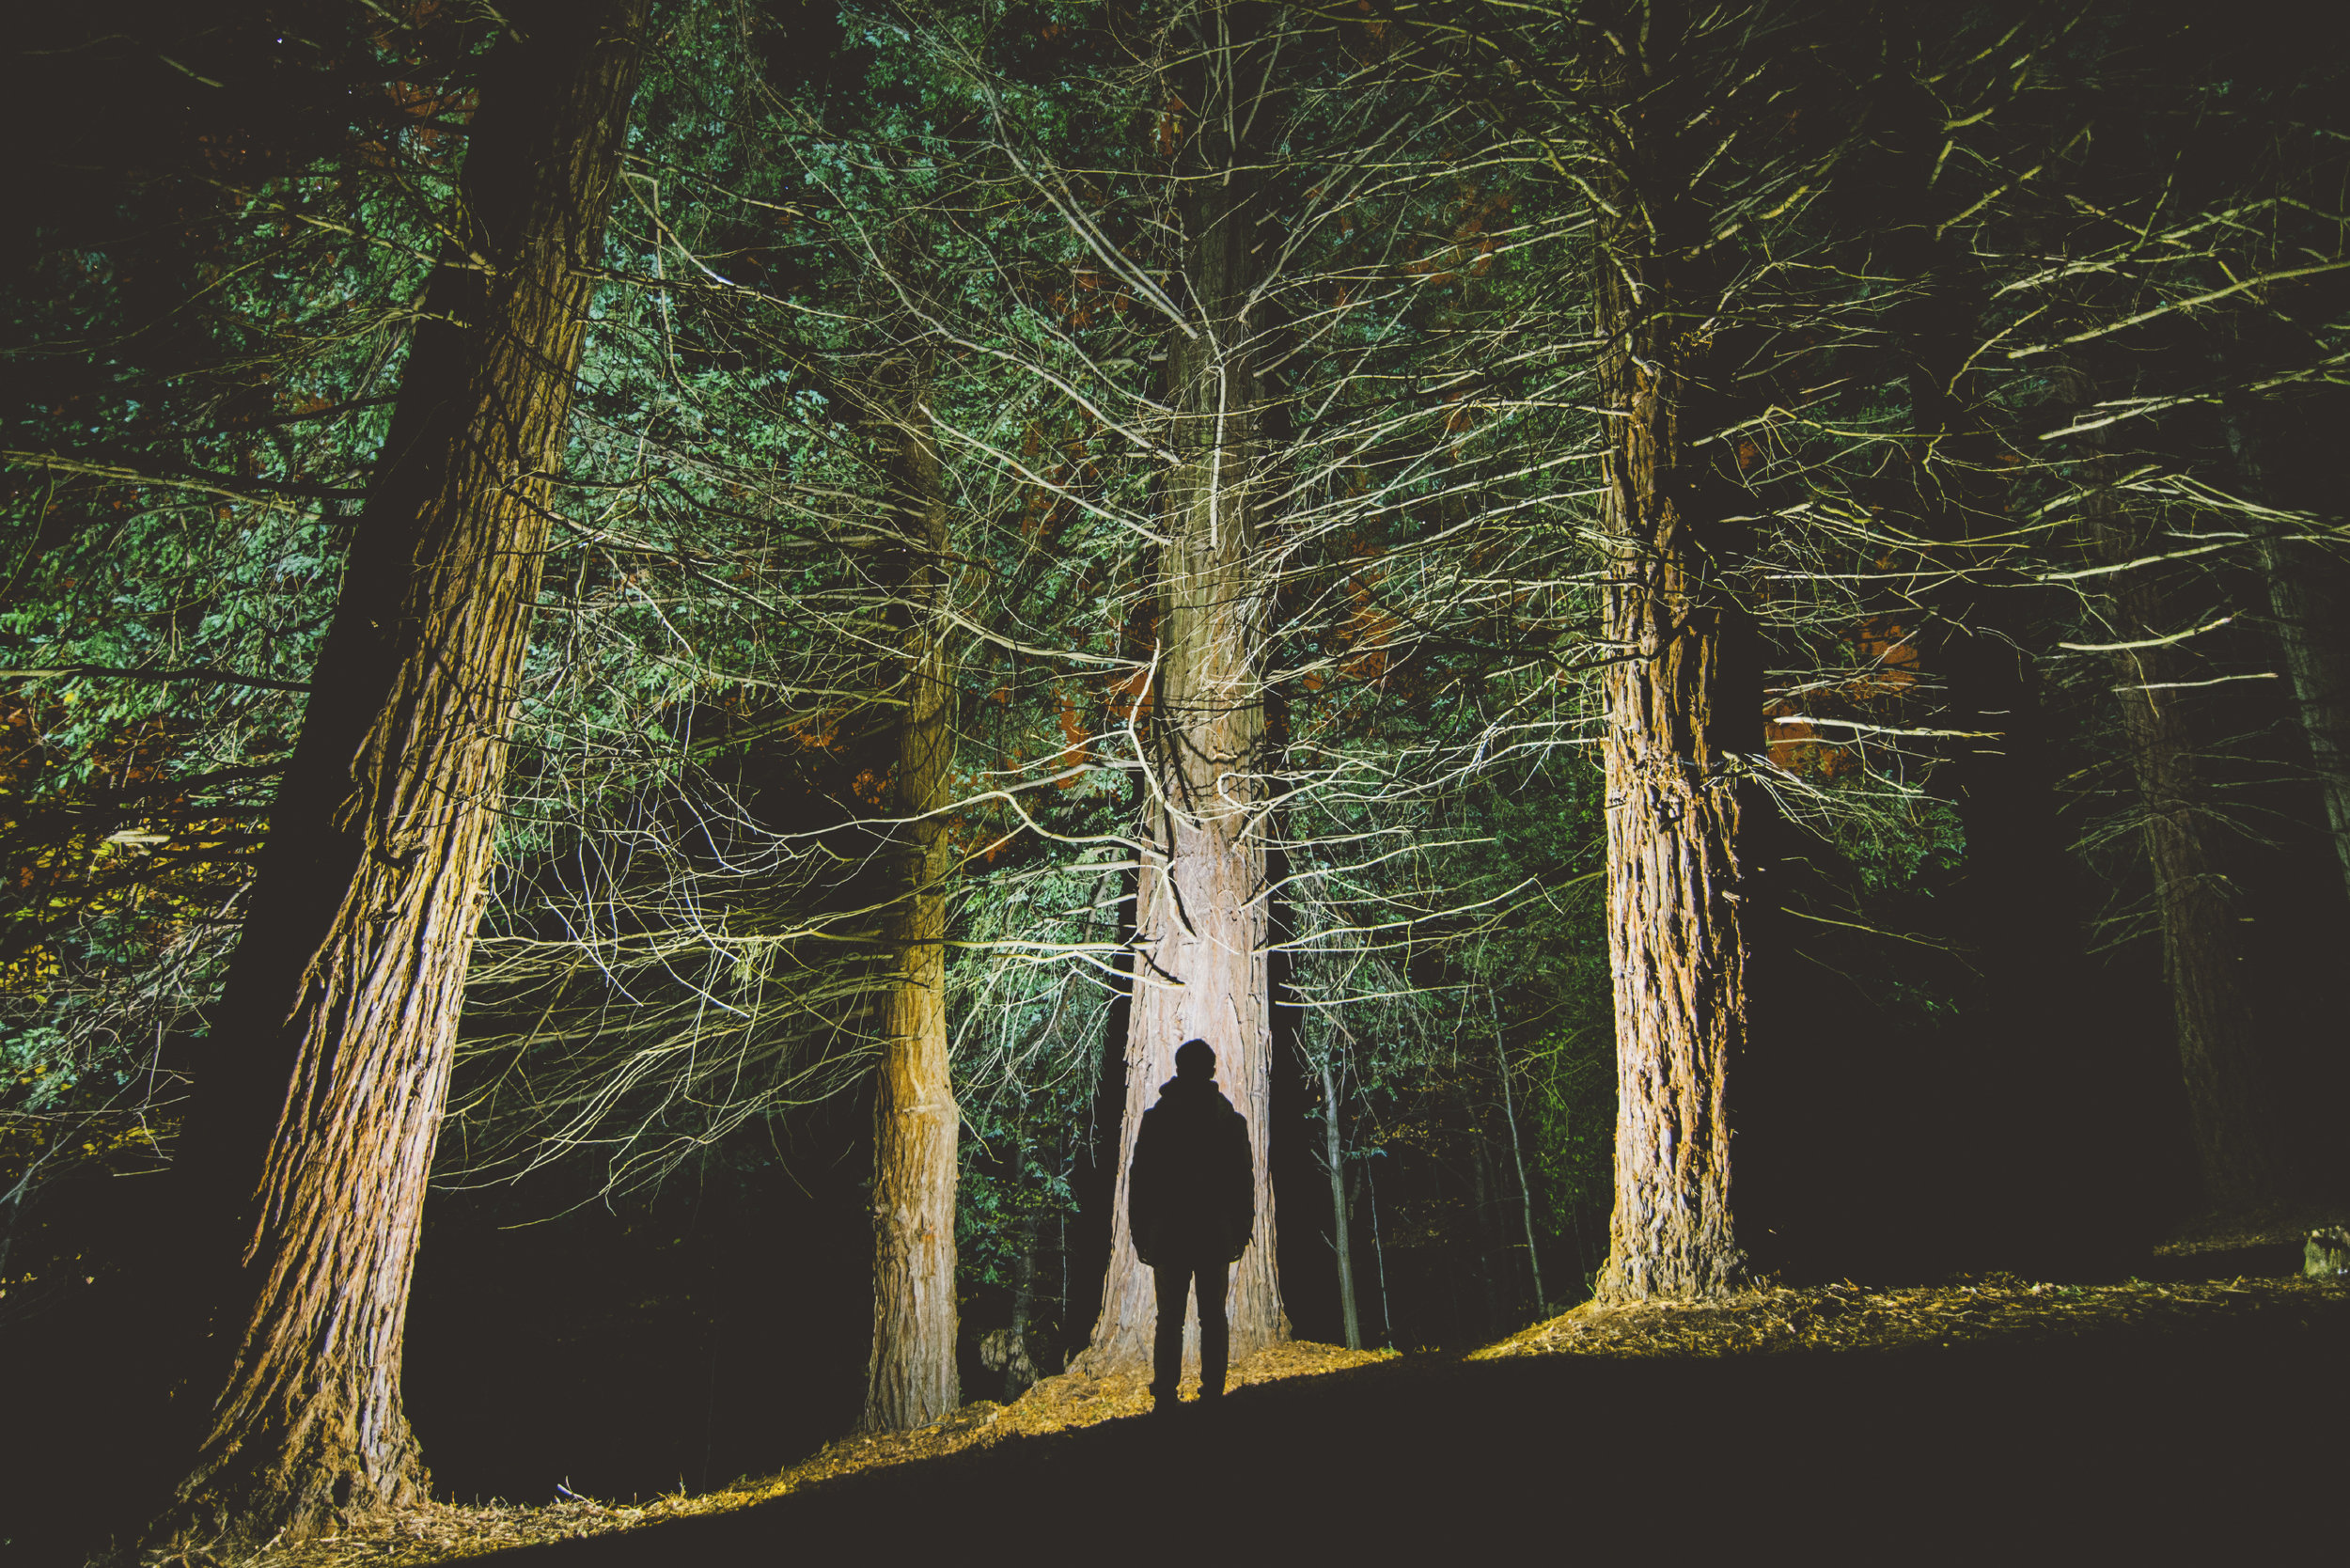 Man's-silhouette-at-forest-000080755217_Large.jpg